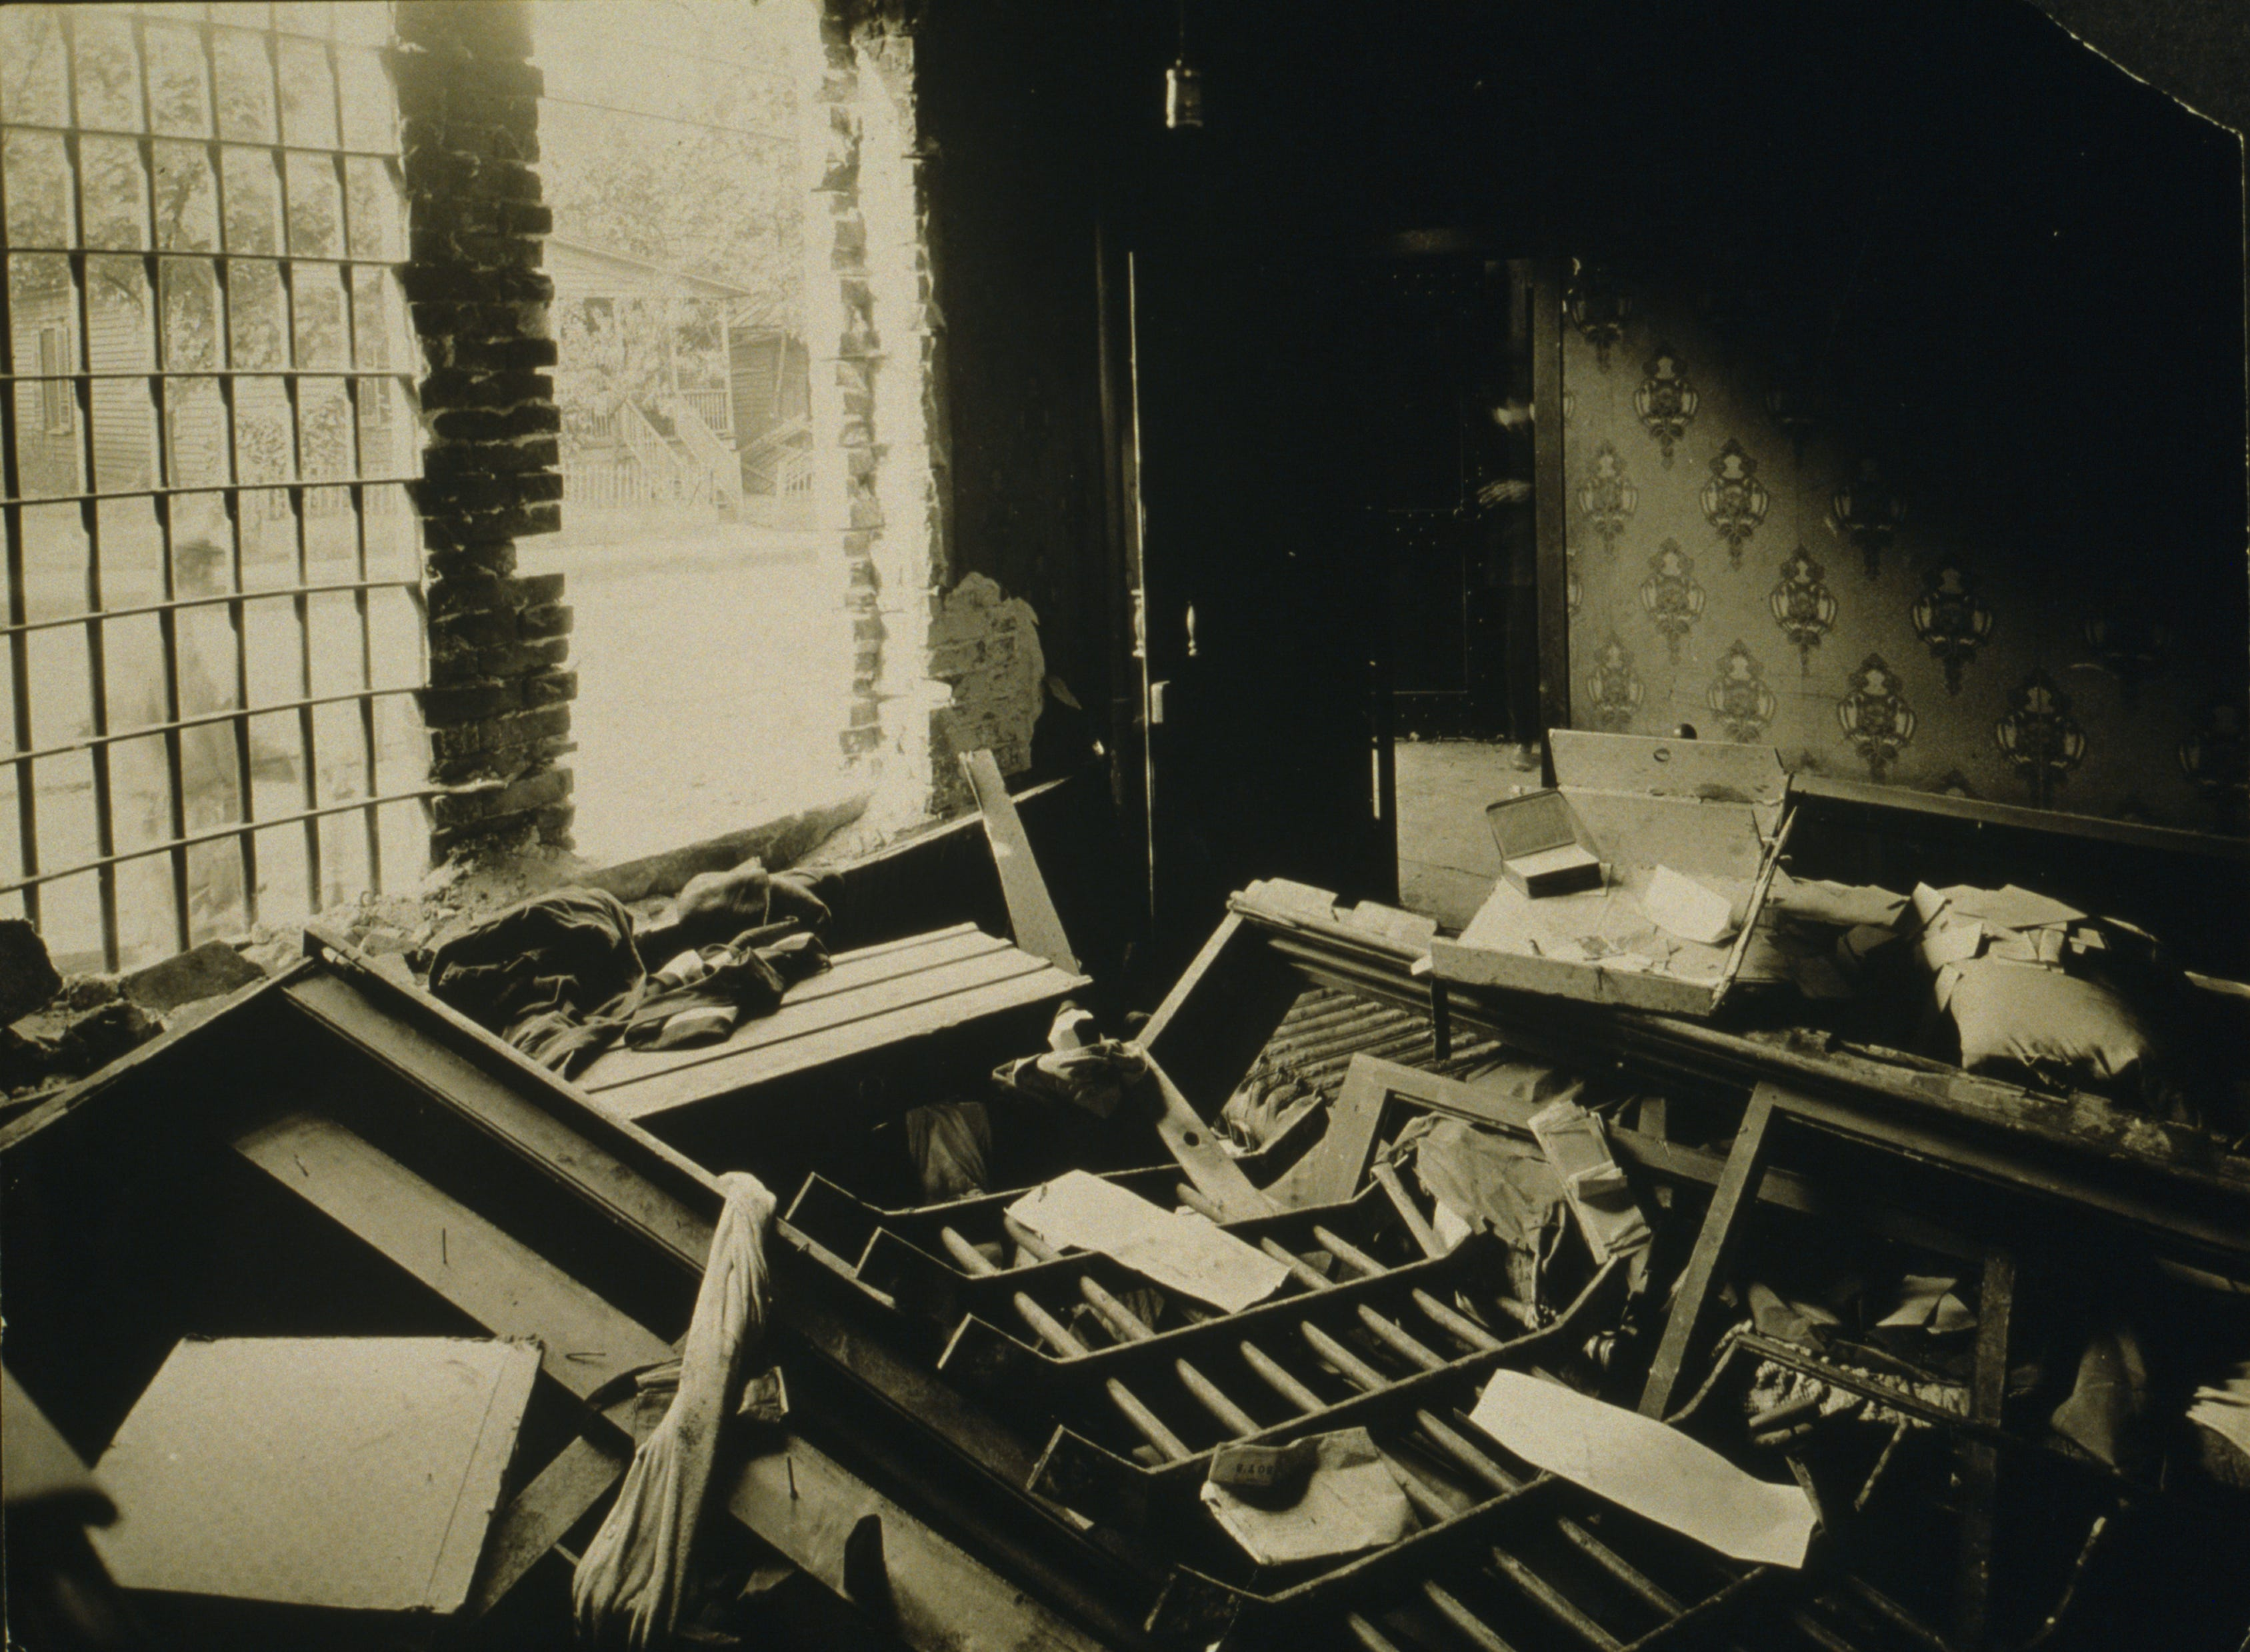 Interior of jailer's room after Maurice Mays' lynching.